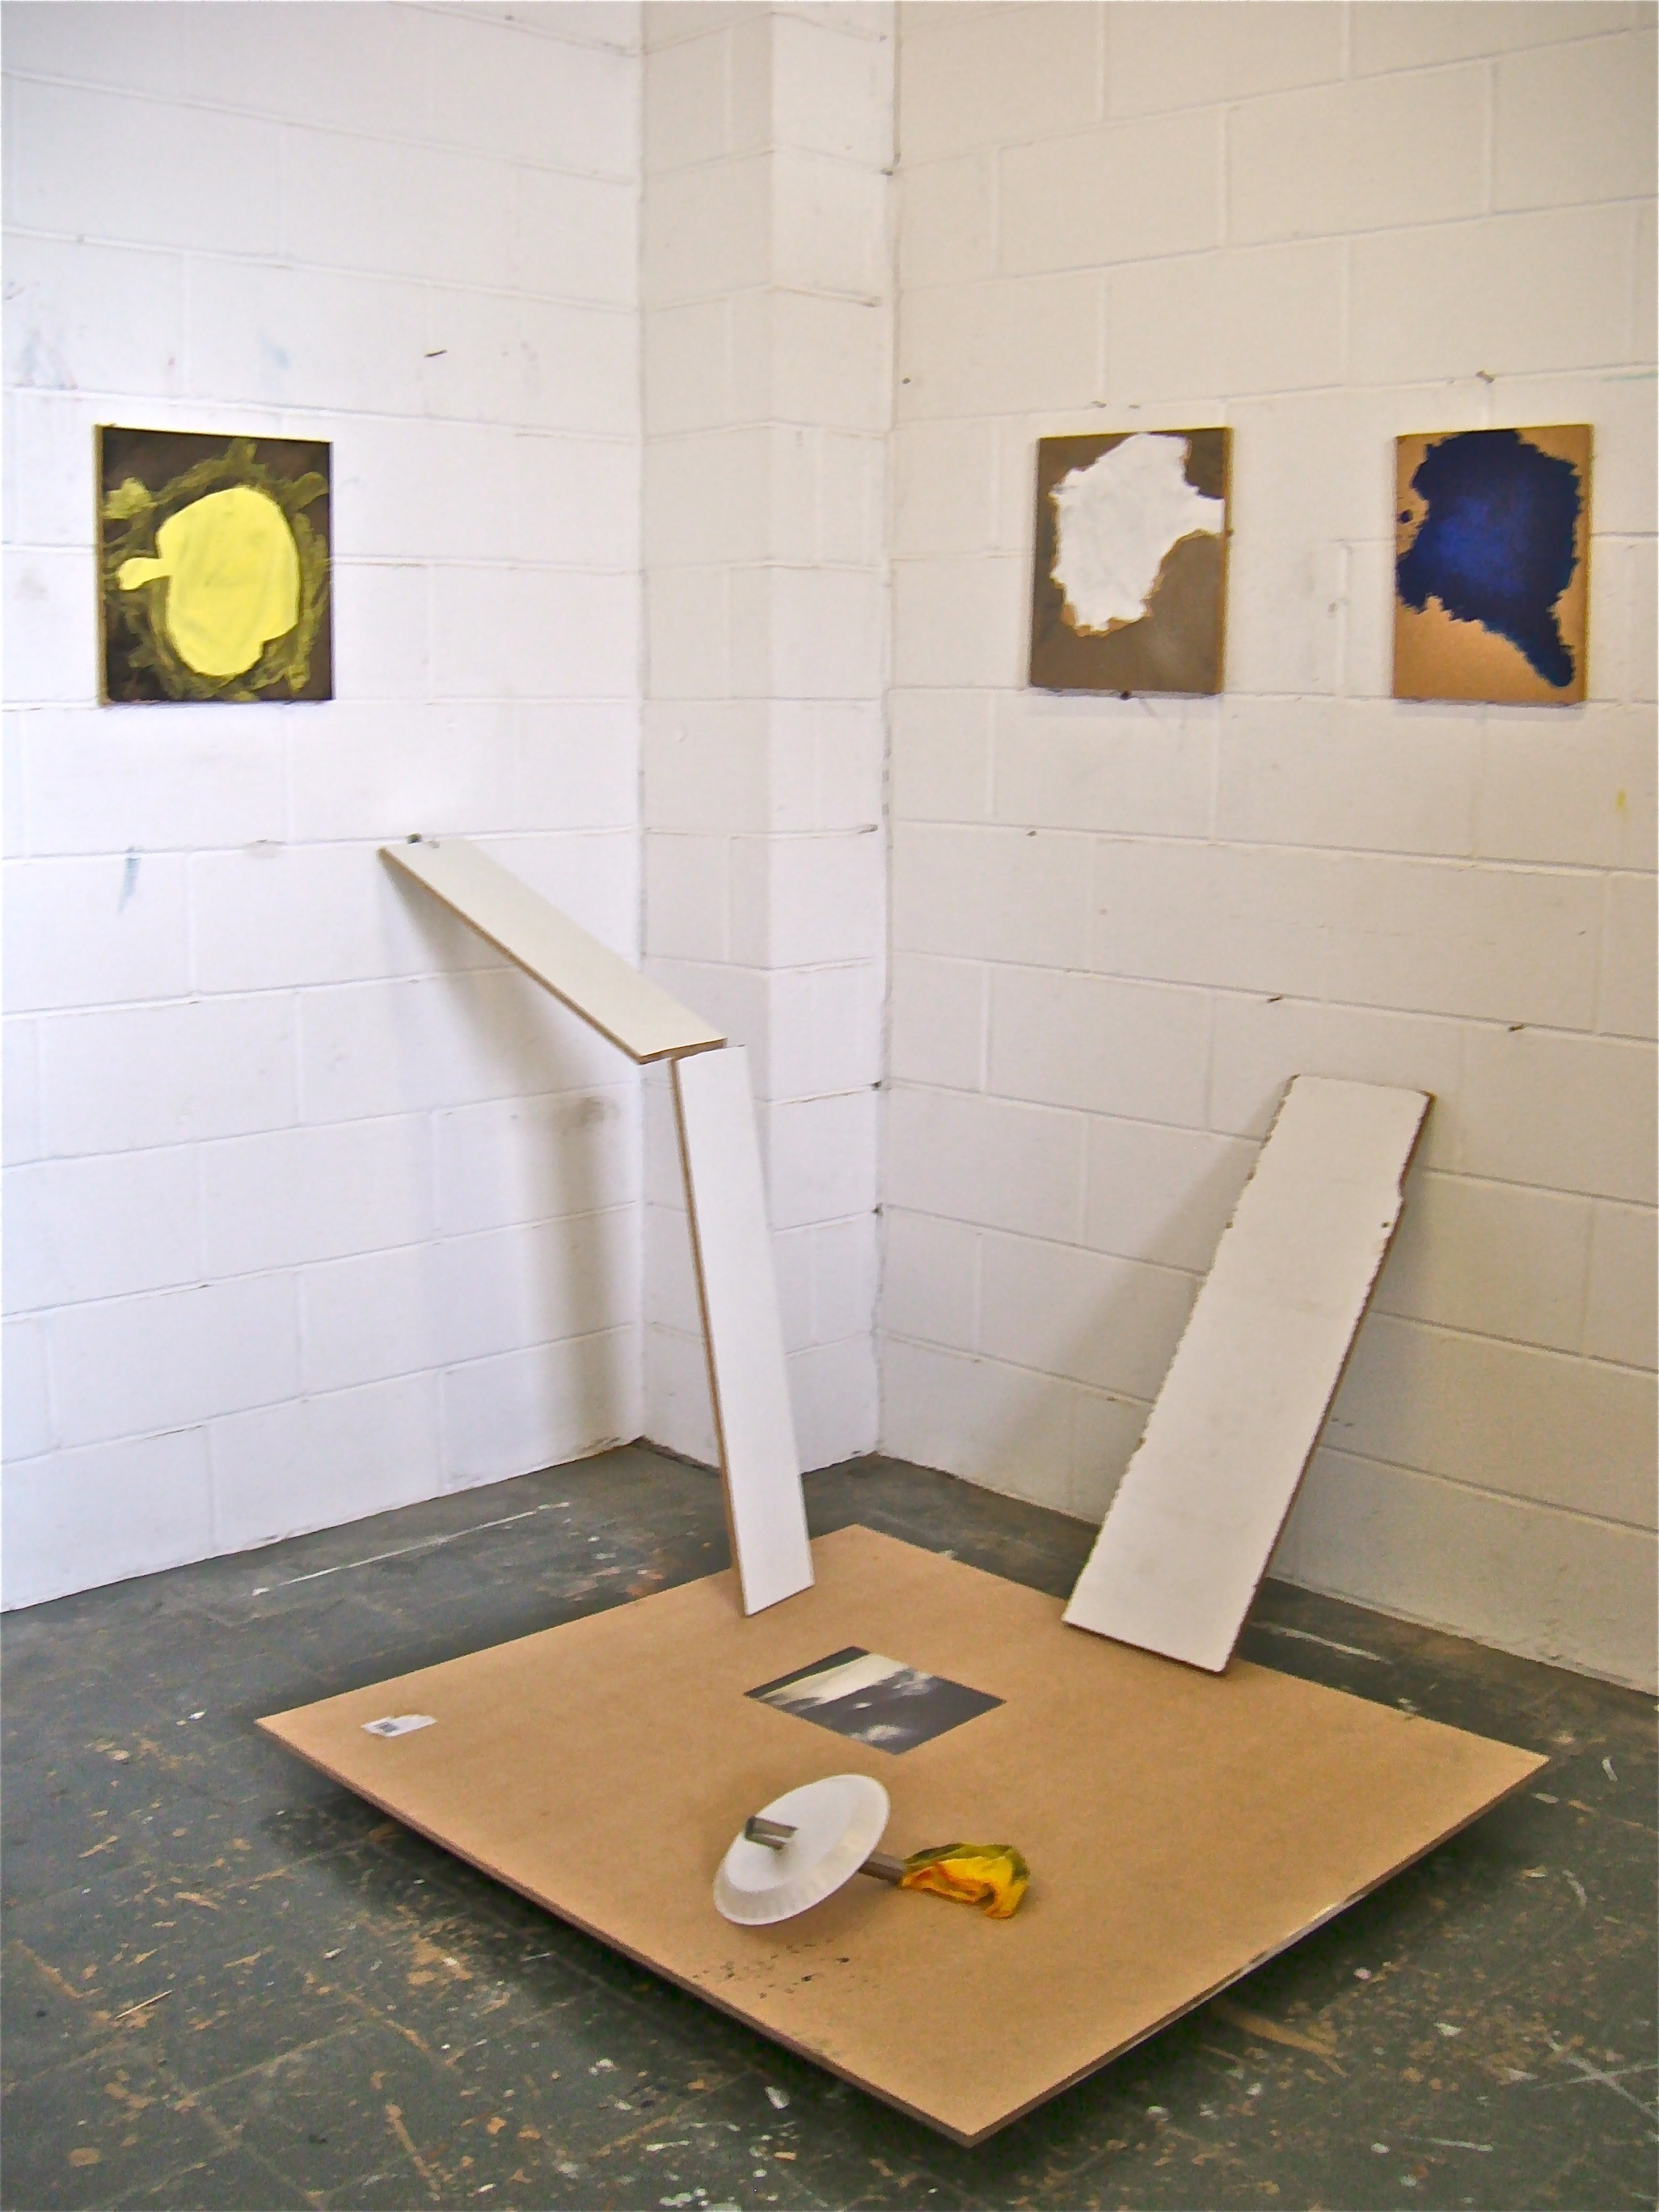 2013, Wall and floor pieces